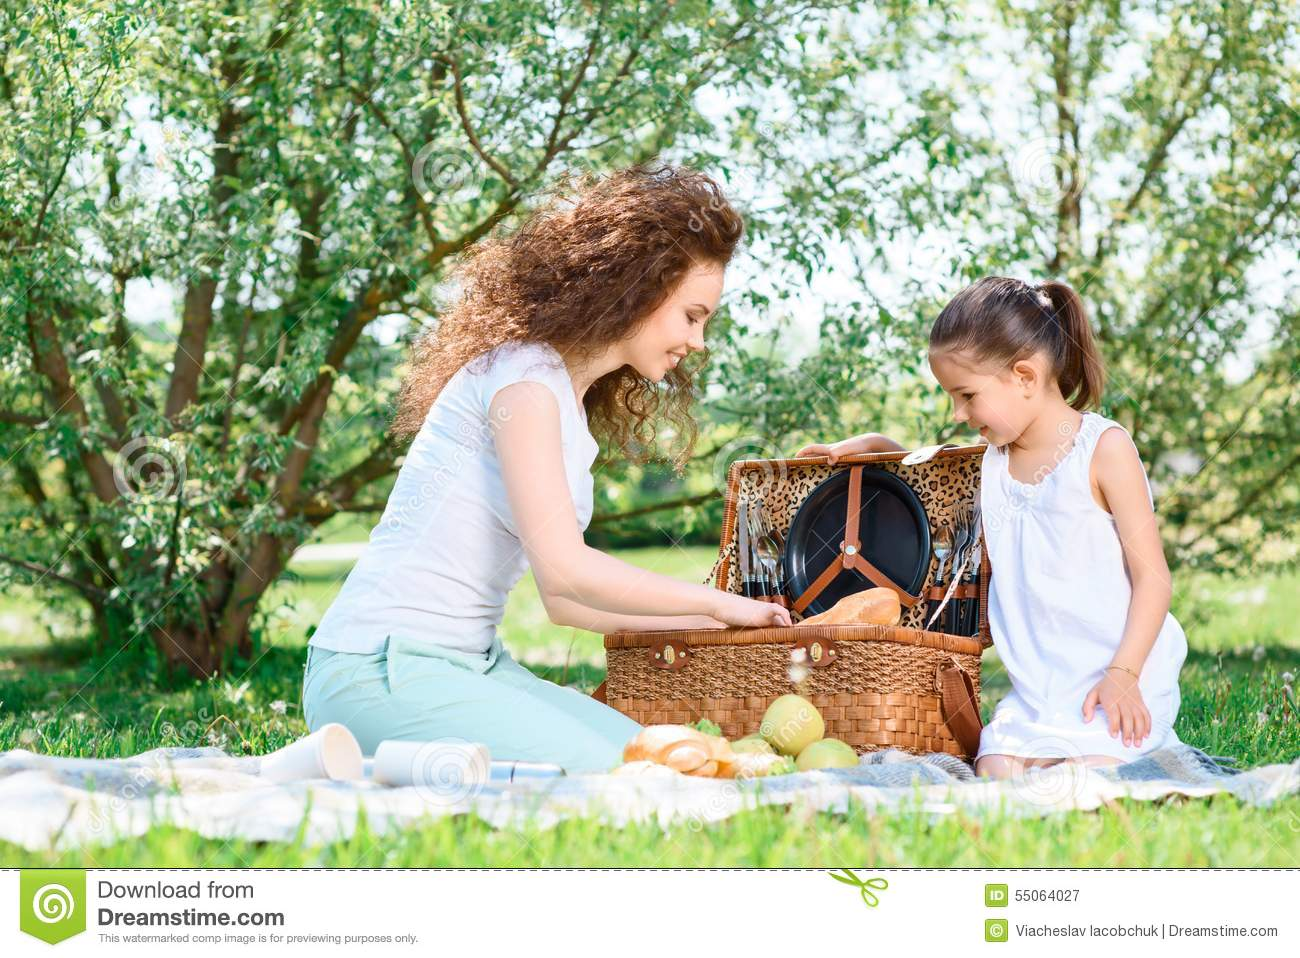 Lovely Family Picnic In The Park Stock Image - Image of picnicking ...